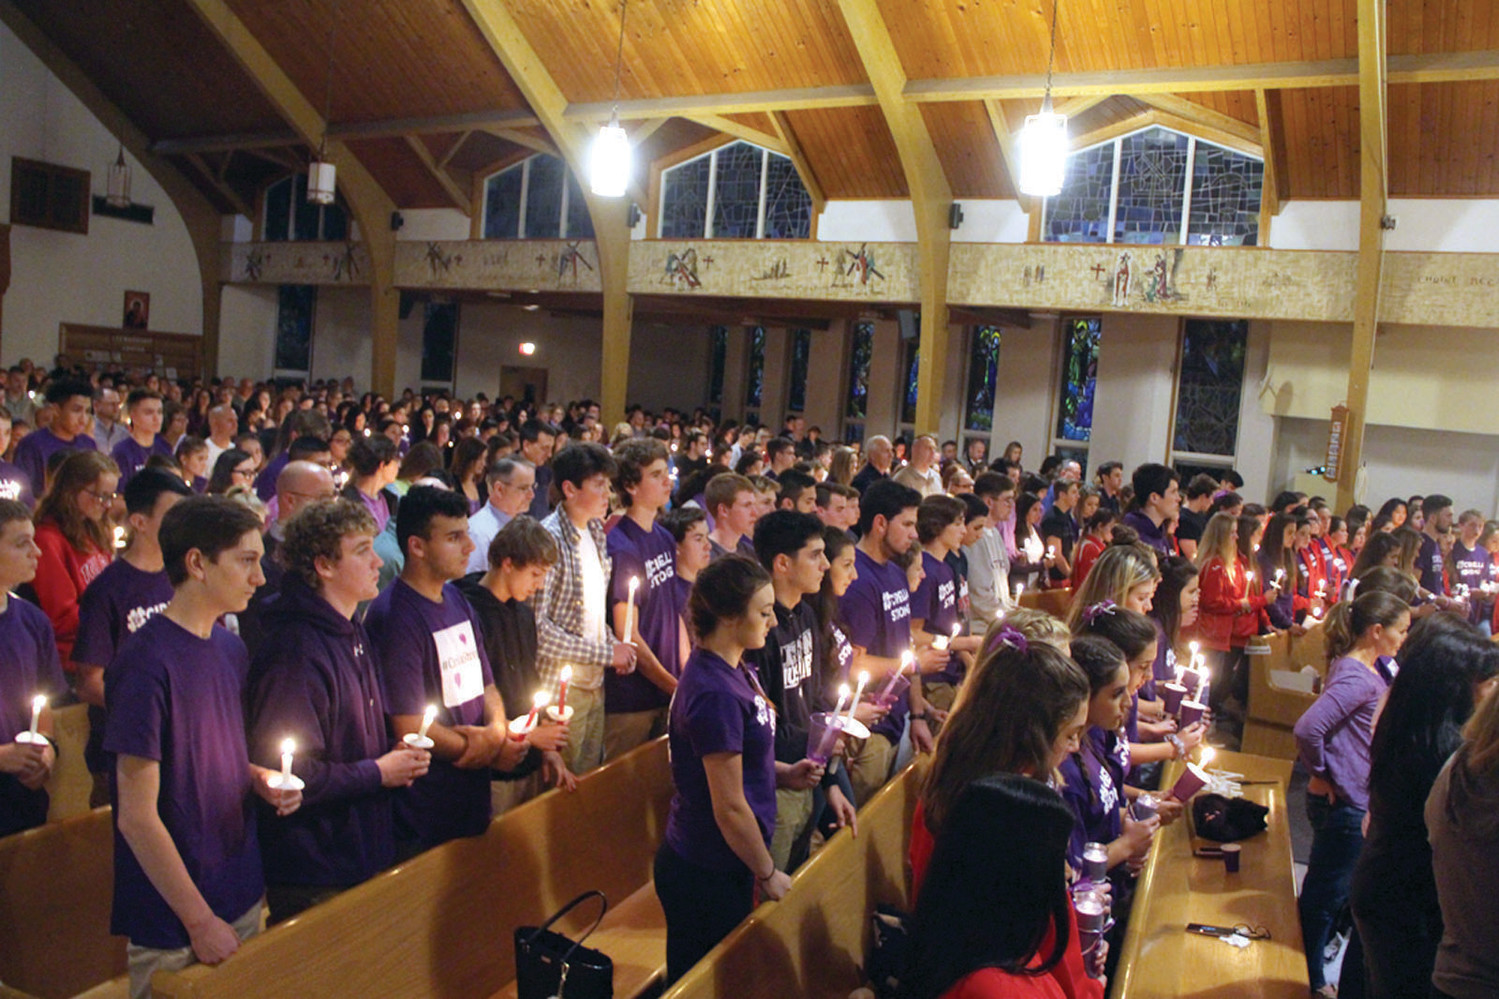 LIGHTS FOR CIRELLA: St. Gregory the Great Church in Cowesett was filled for Friday's vigil for 16-year-old Gianna Cirella, who died last Wednesday.